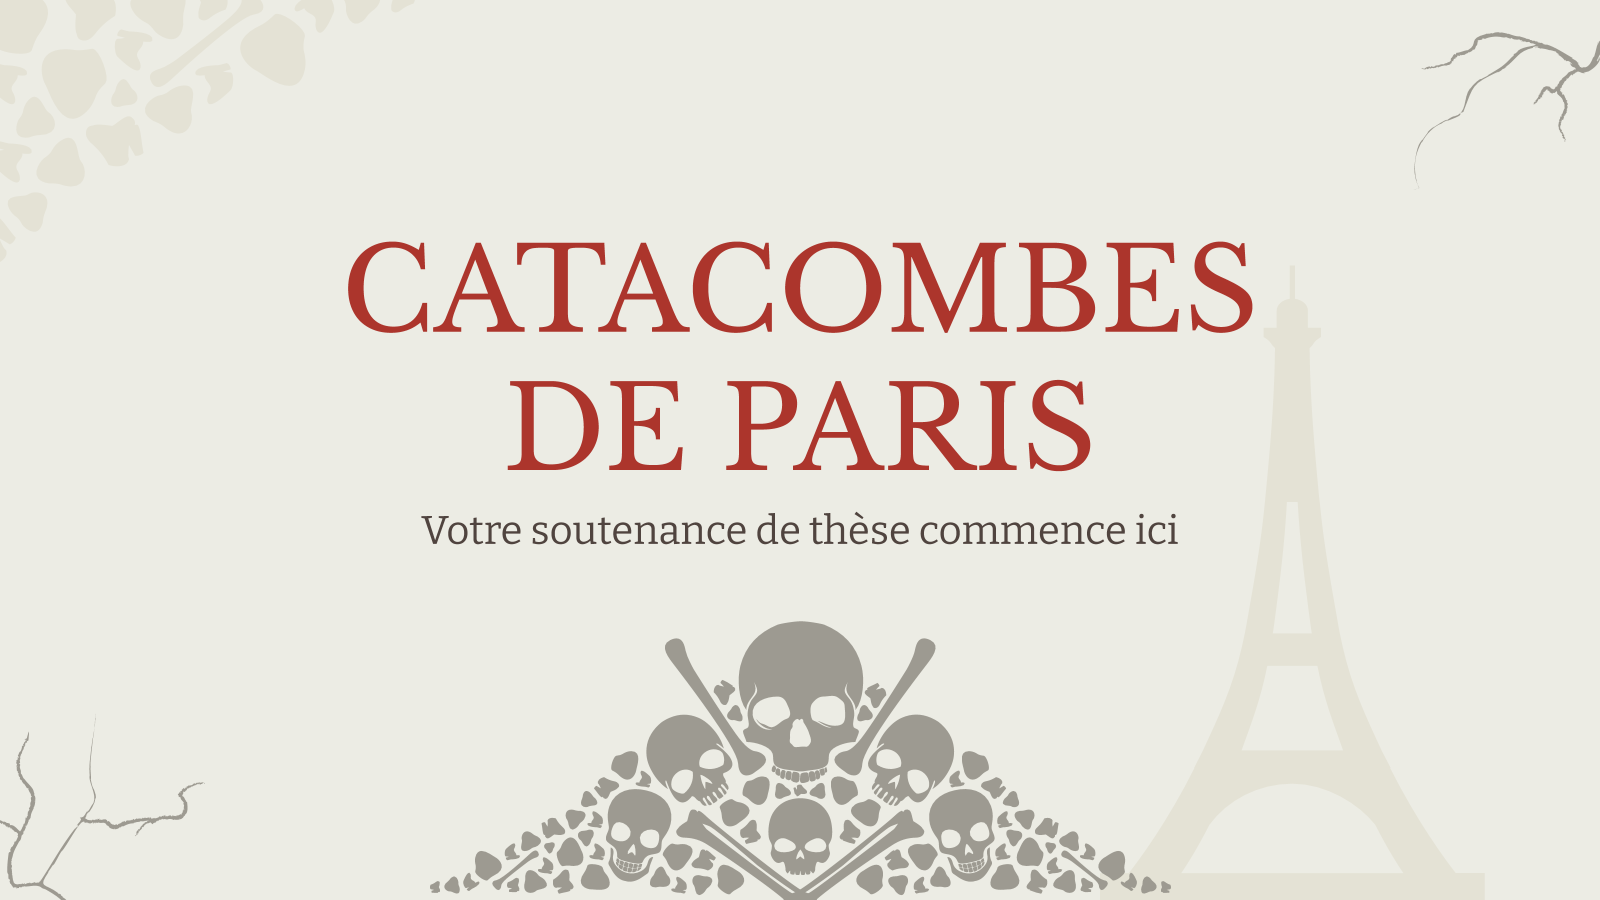 Catacombes de Paris presentation template